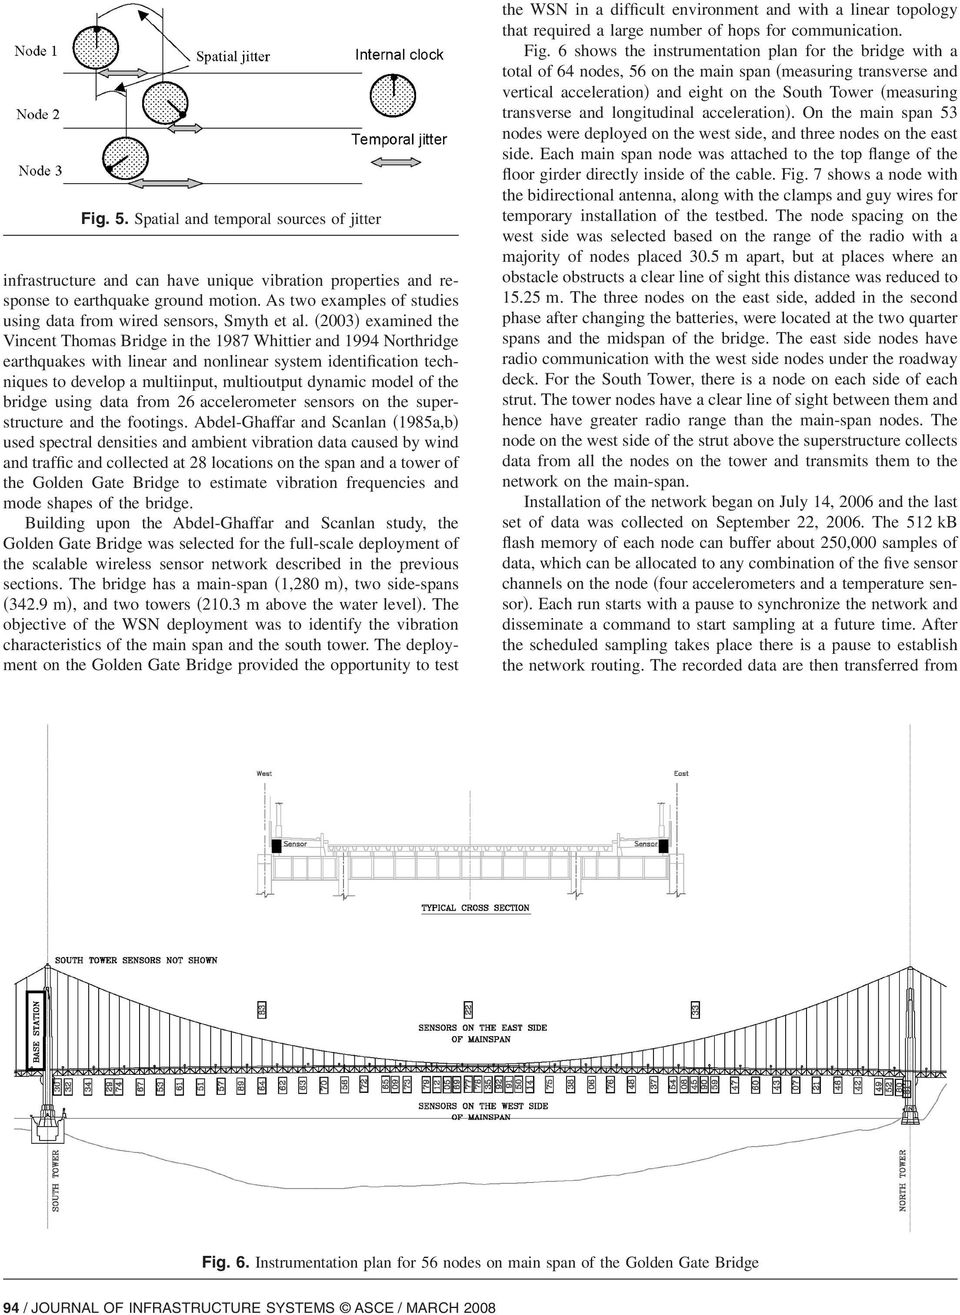 2003 examined the Vincent Thomas Bridge in the 1987 Whittier and 1994 Northridge earthquakes with linear and nonlinear system identification techniques to develop a multiinput, multioutput dynamic